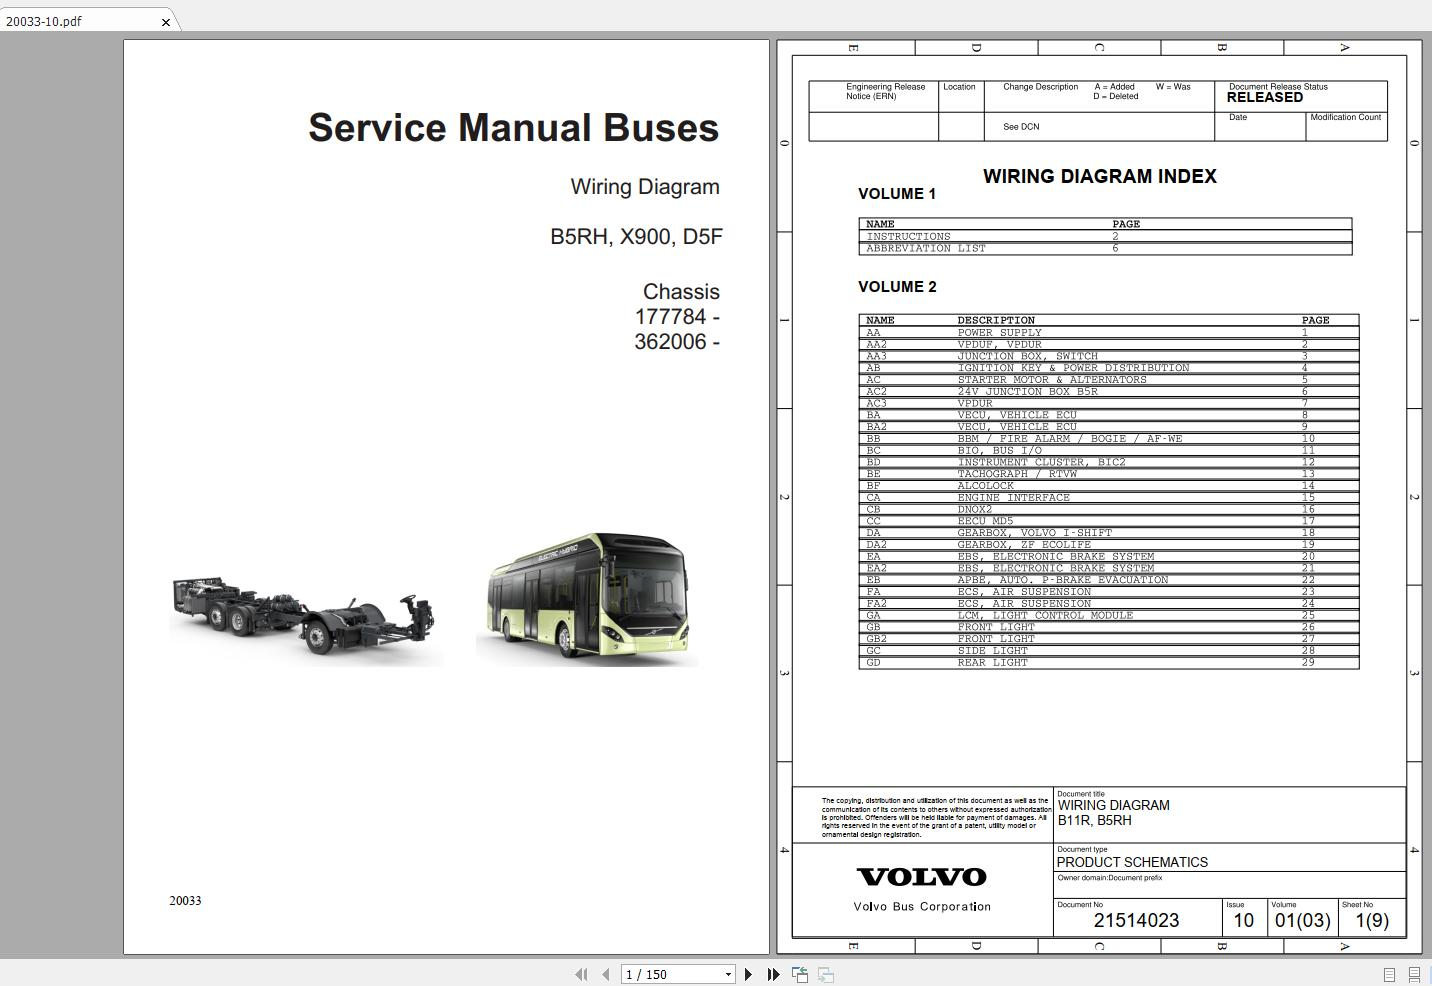 Volvo B5rh Trucks Service Manual Buses  U0026 Wiring Diagrams - Homepage